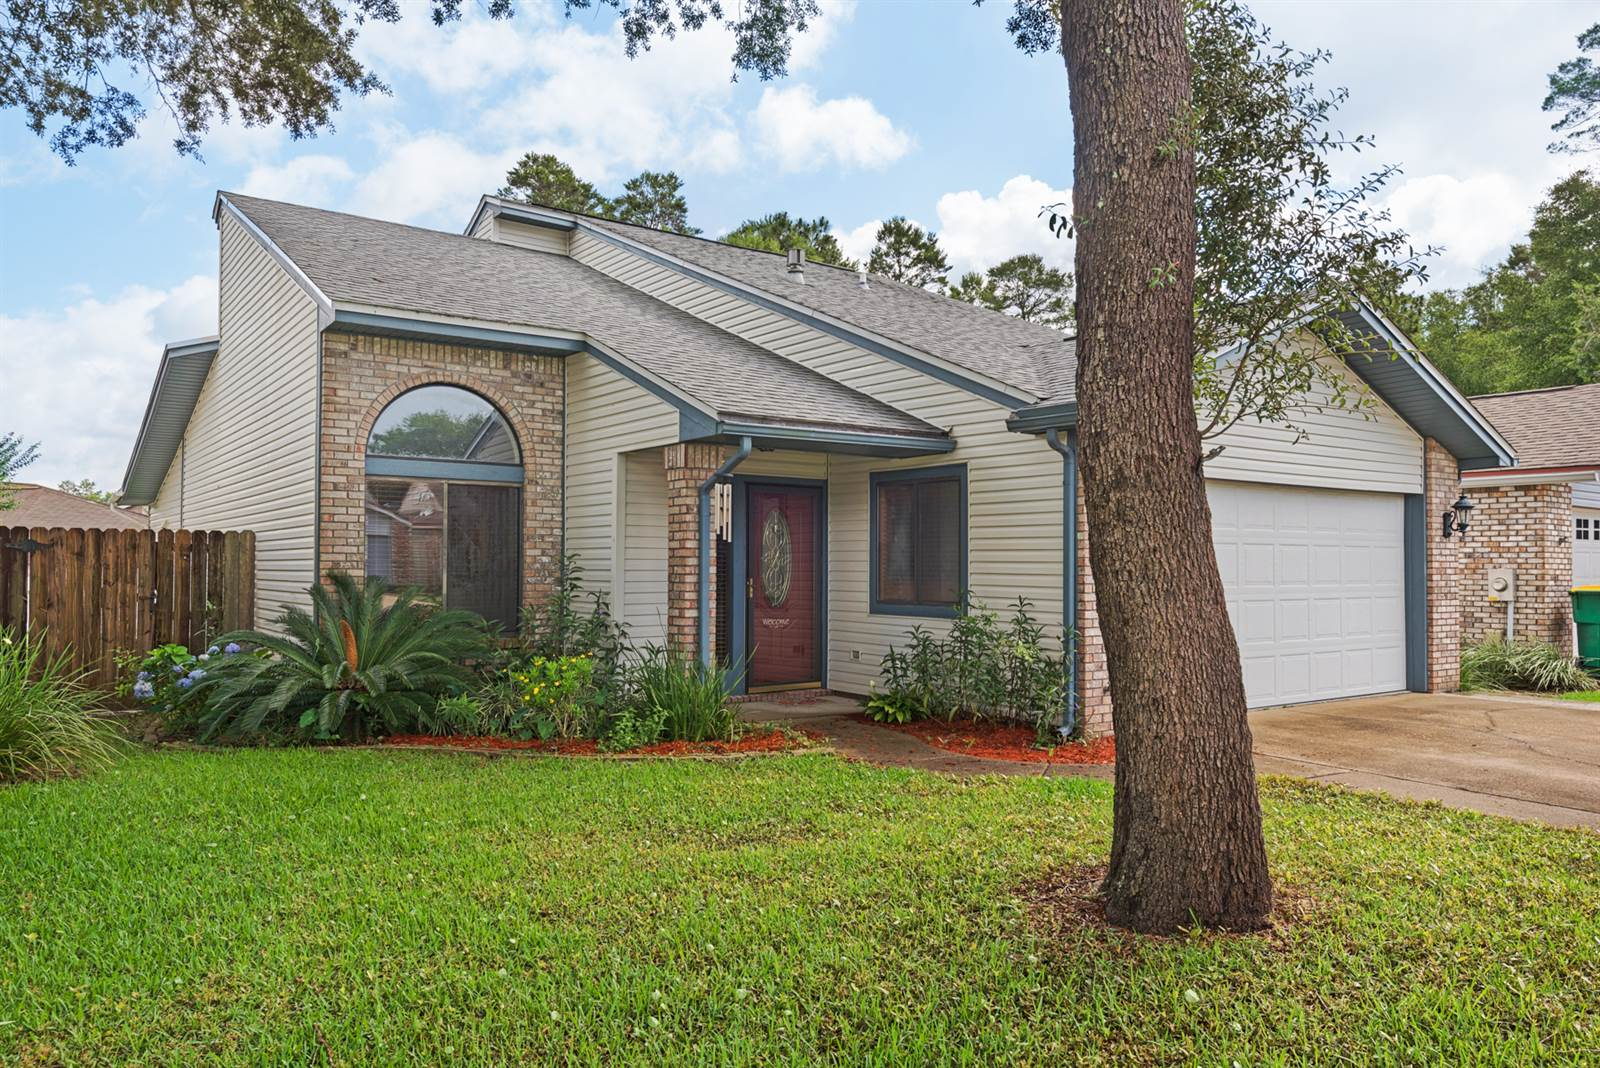 3915 Summerwood Court, Niceville, FL 32578